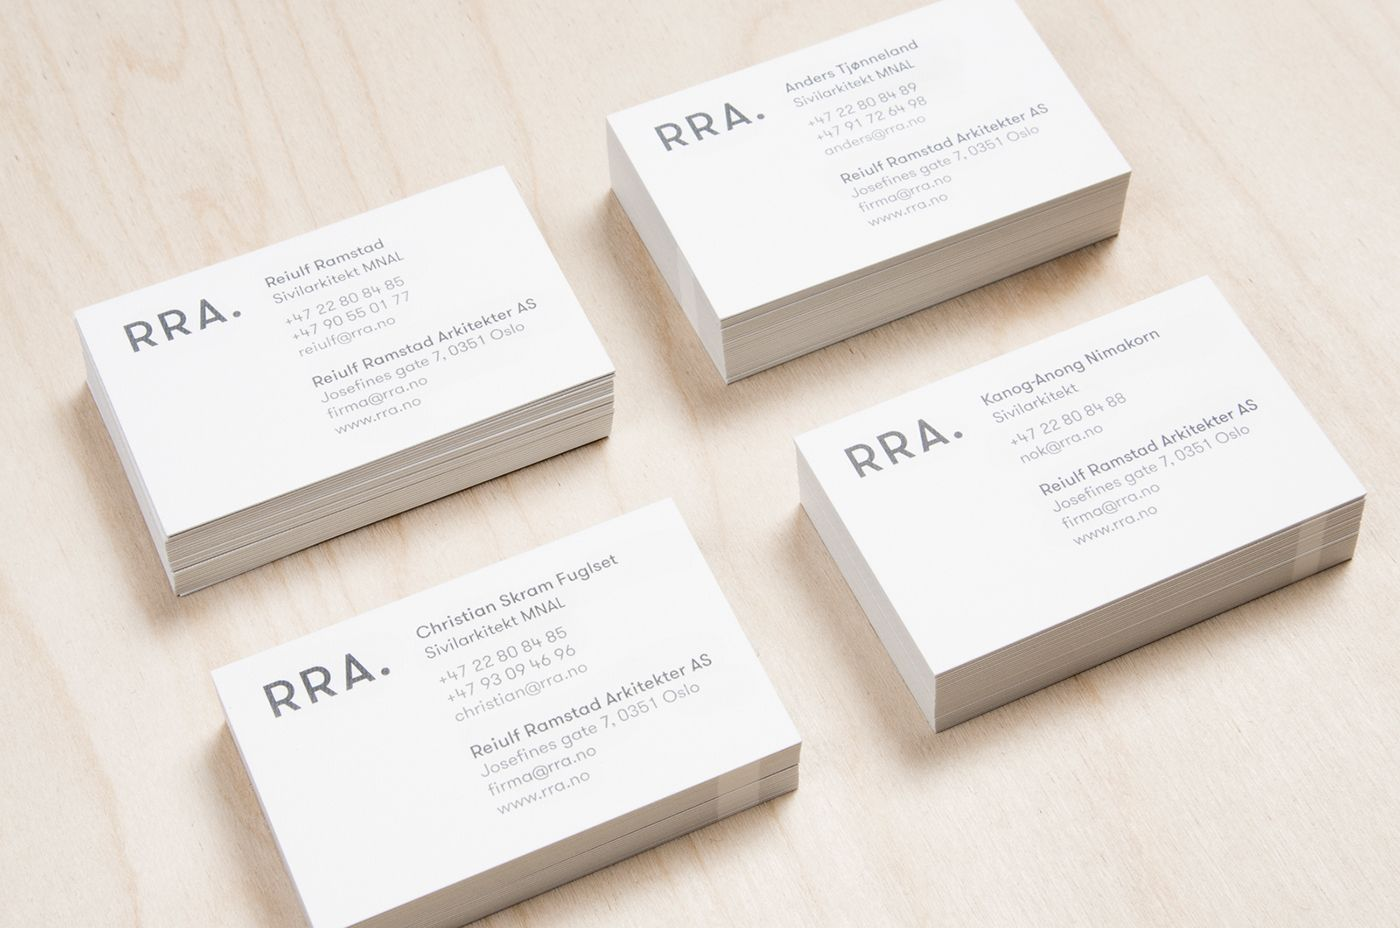 Rra Is An Award Winning Architecture Firm Based In Oslo